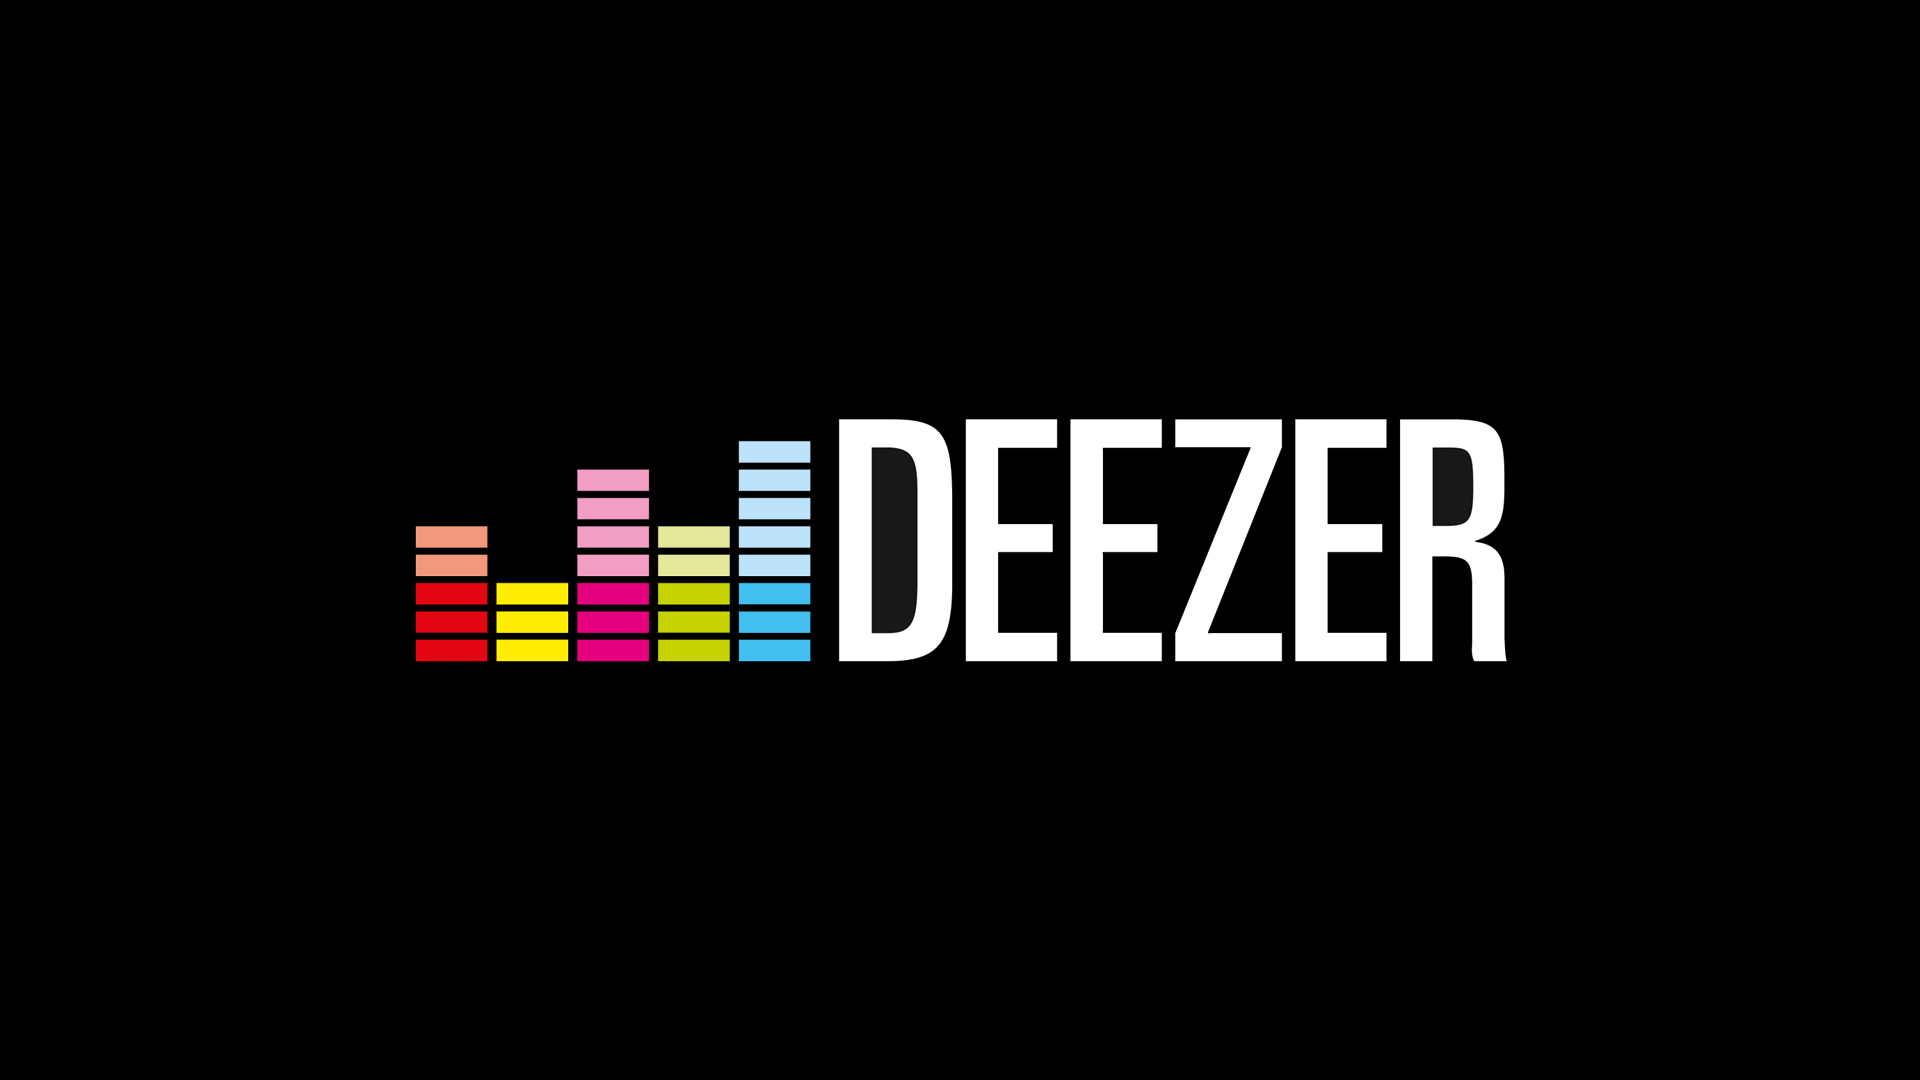 Deezer music playlist promotion for 30 days